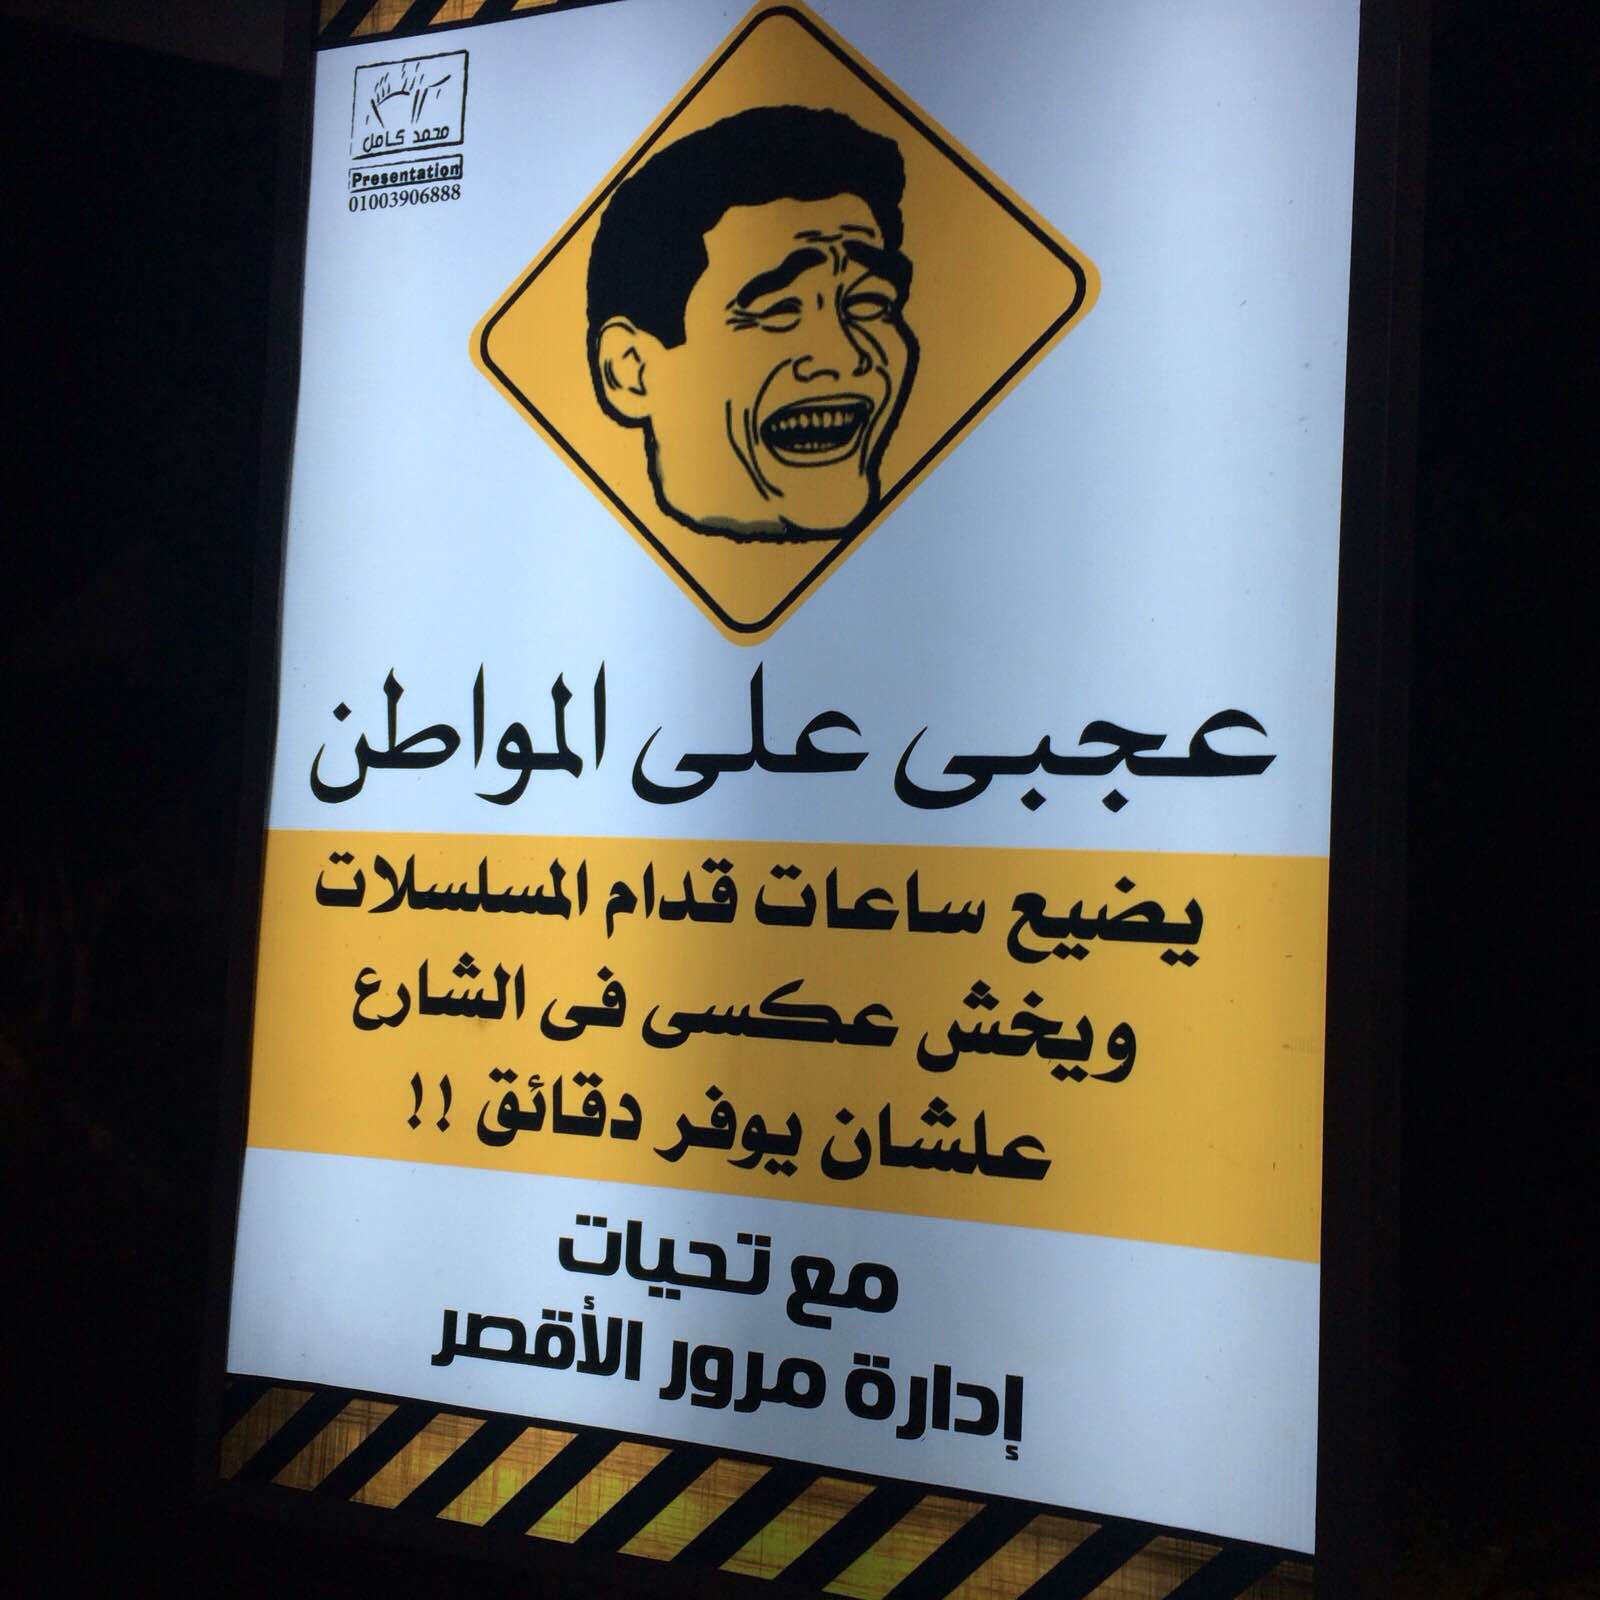 Translation: I'm surprised at the citizen! They waste hours in front of TV series but drive in the wrong direction on a one way street to save a few minutes!! With regards, Luxor Traffic Authority.